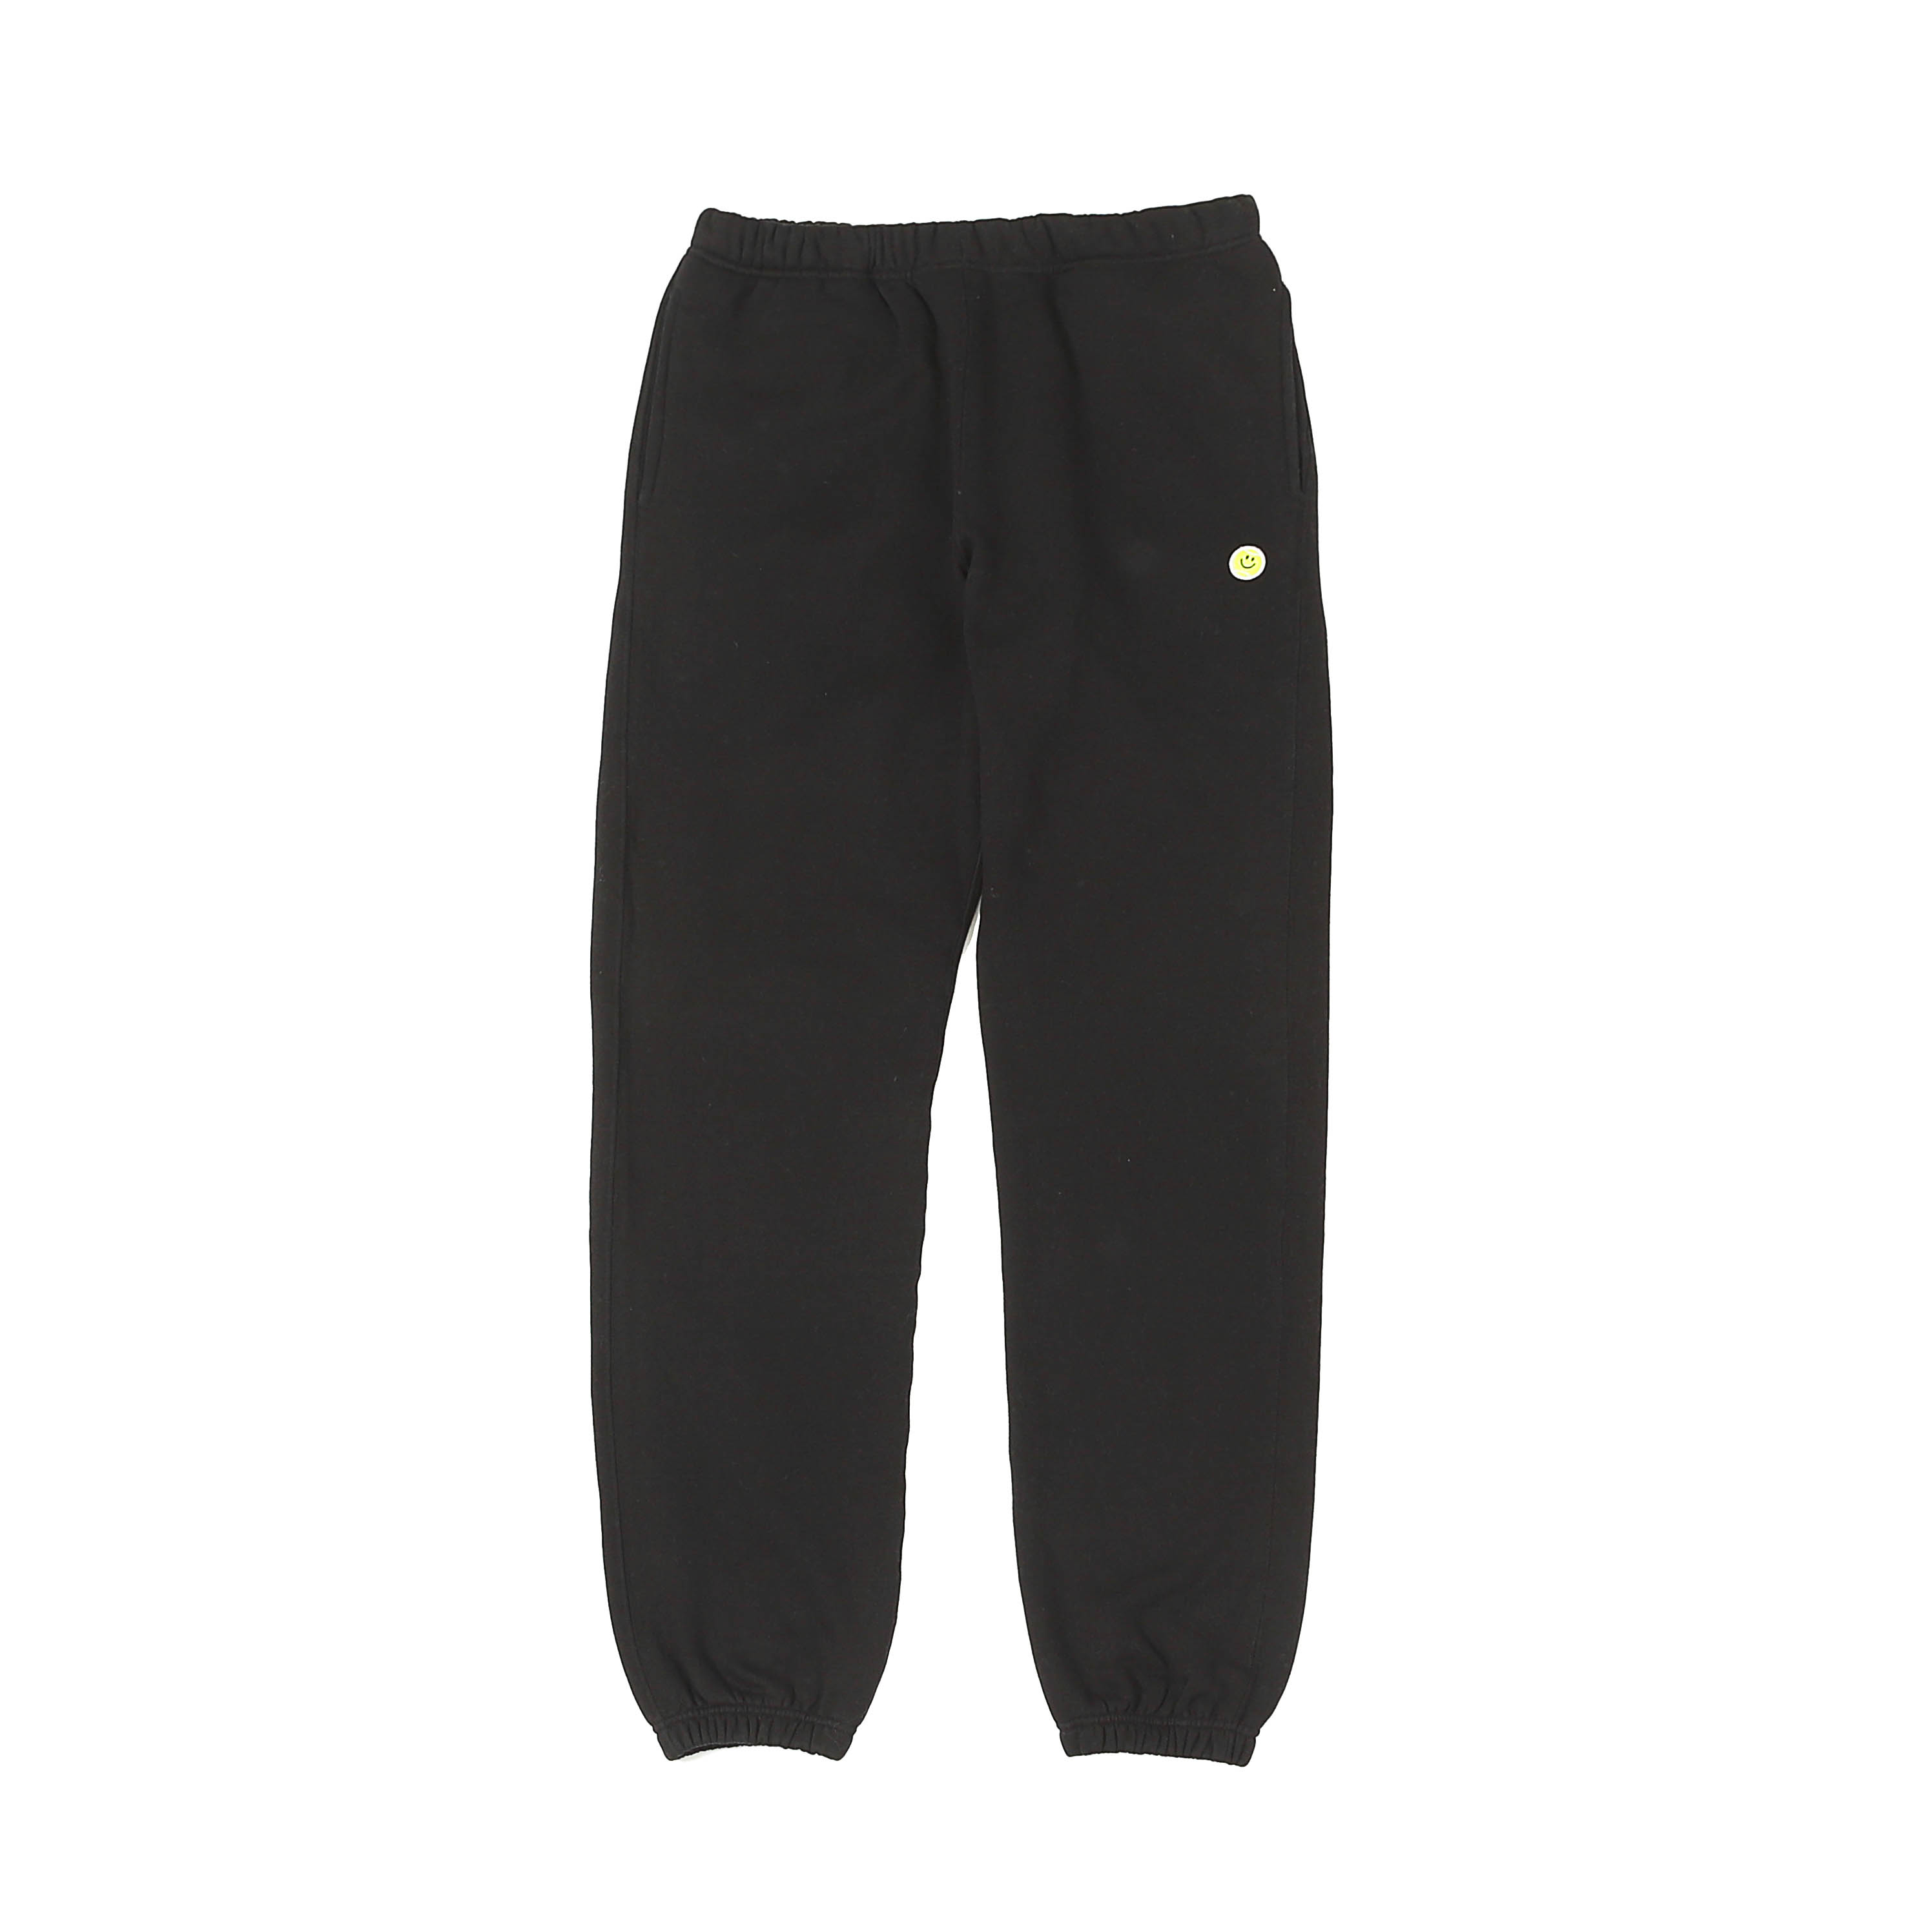 SMILE BALL SWEAT PANTS - BLACK